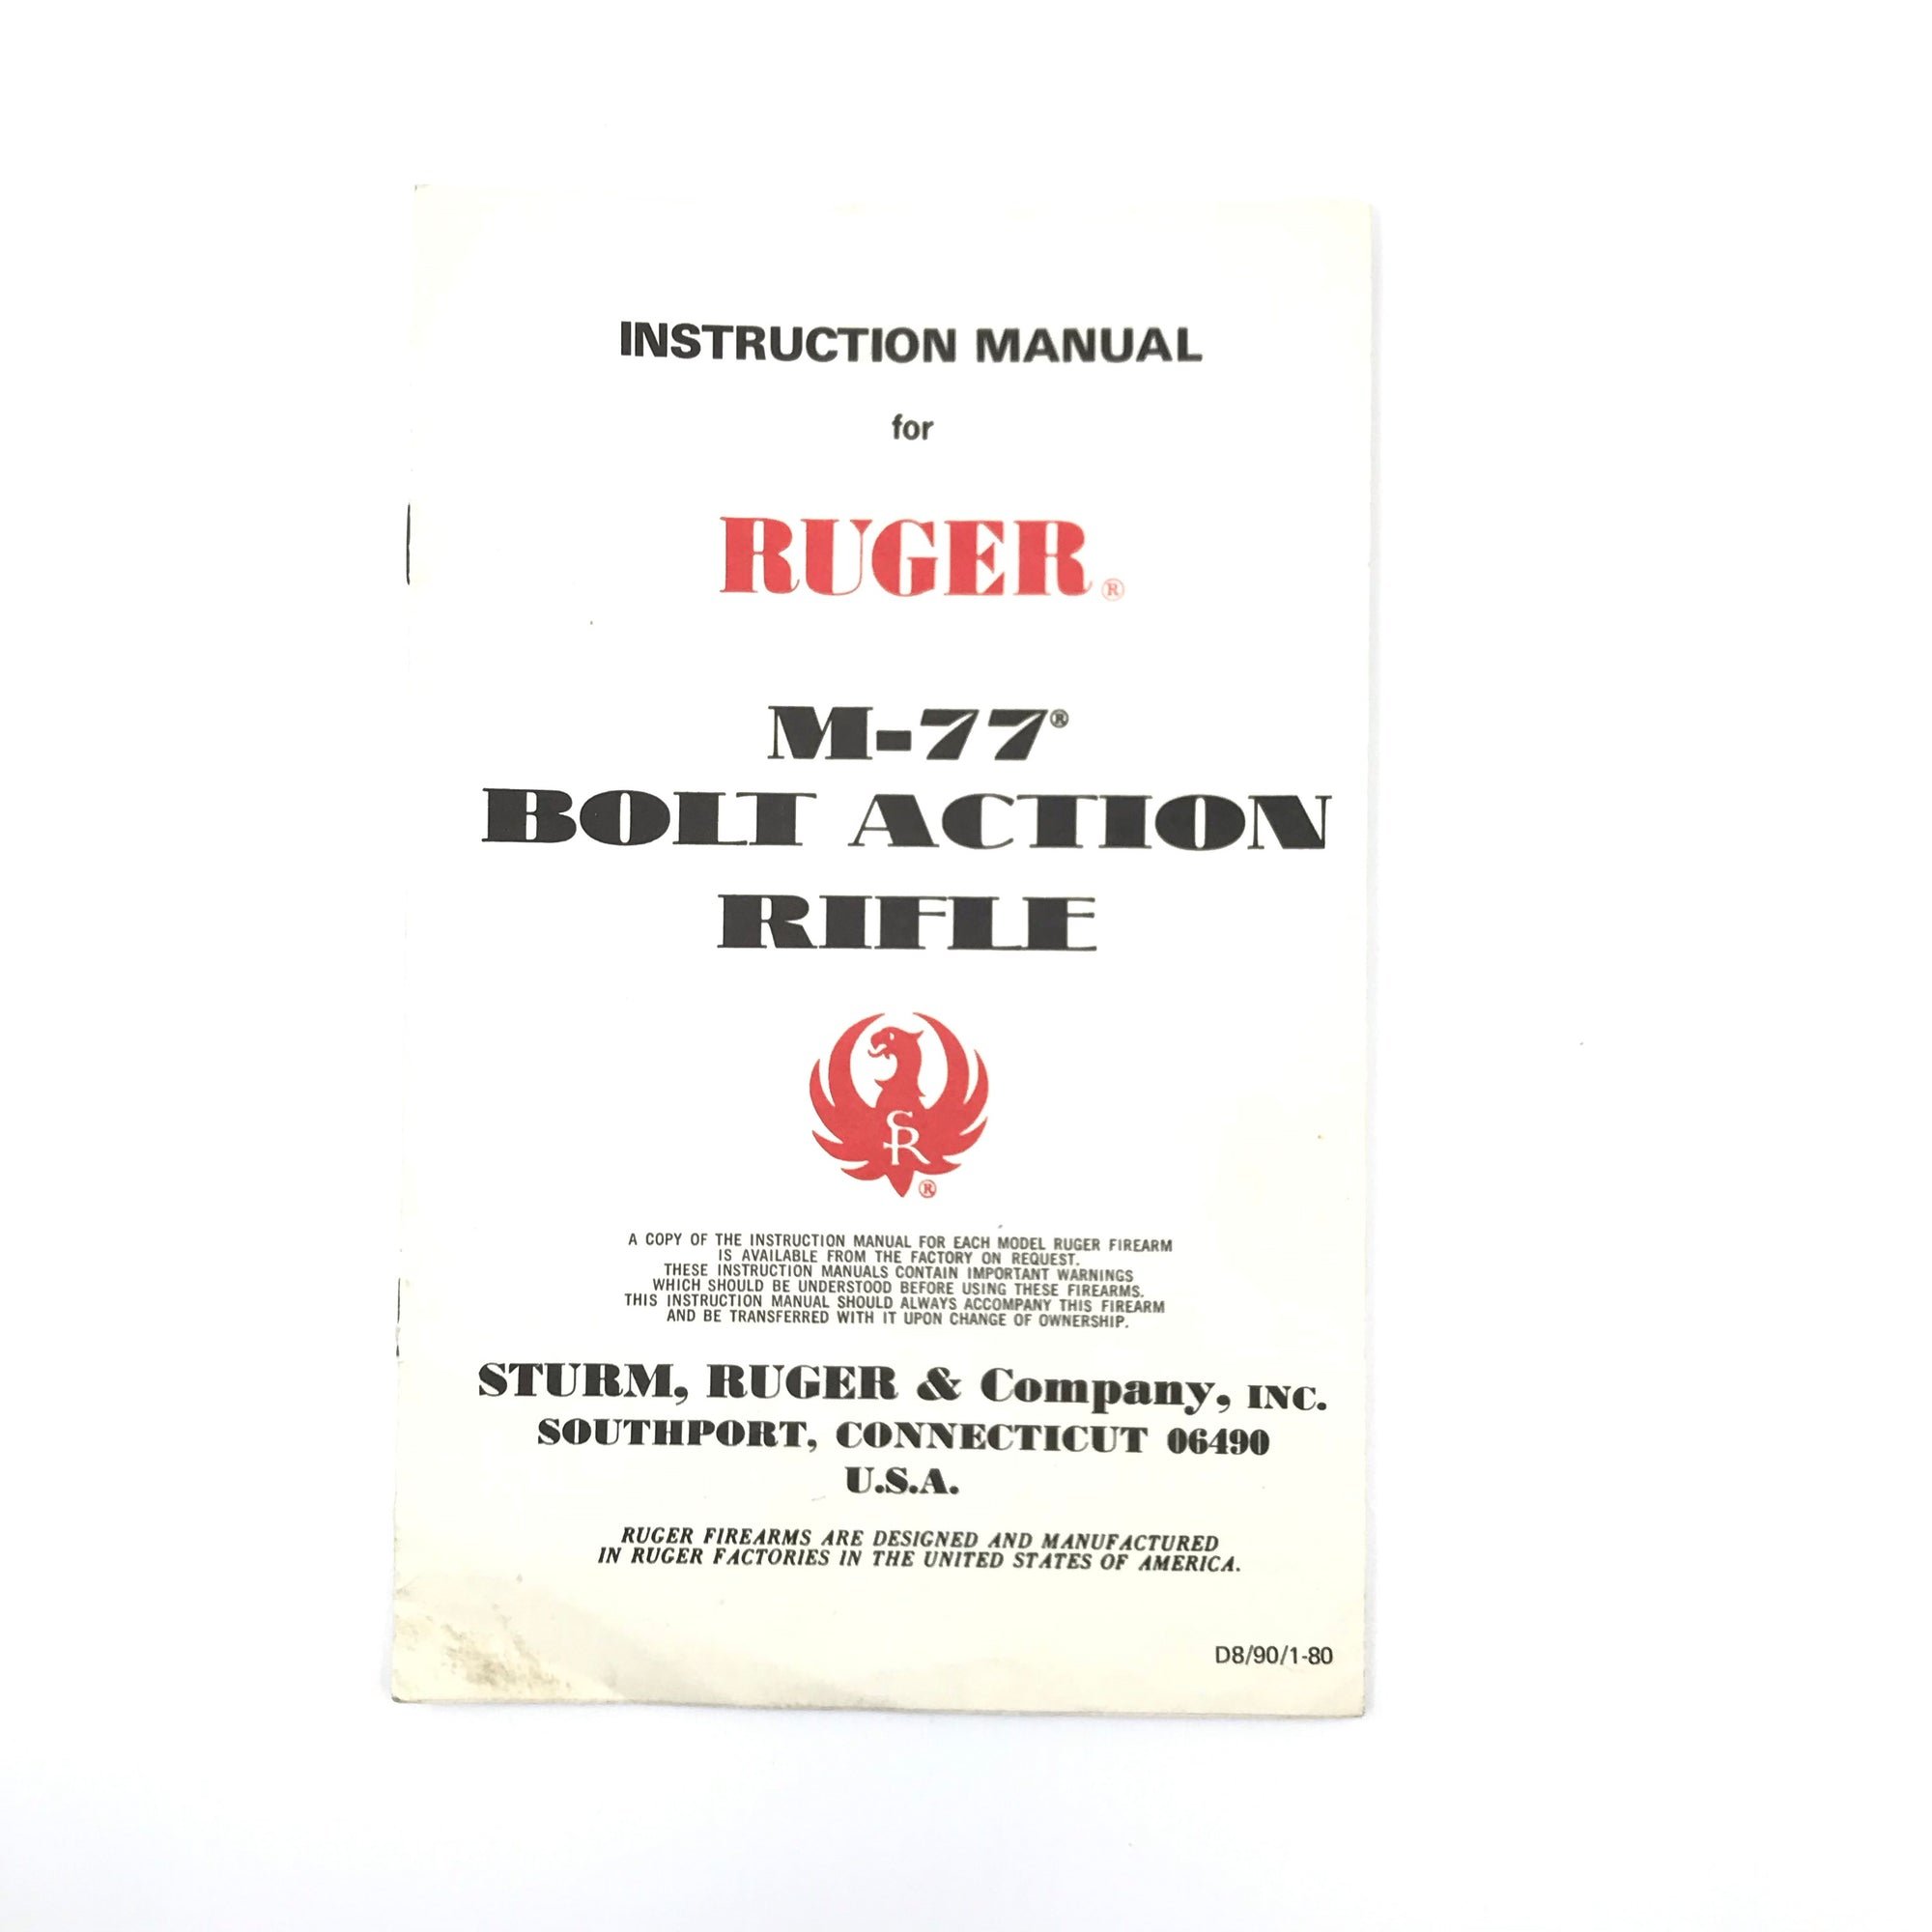 Instruction Manual for Ruger M-77 Bolt Action Rifle